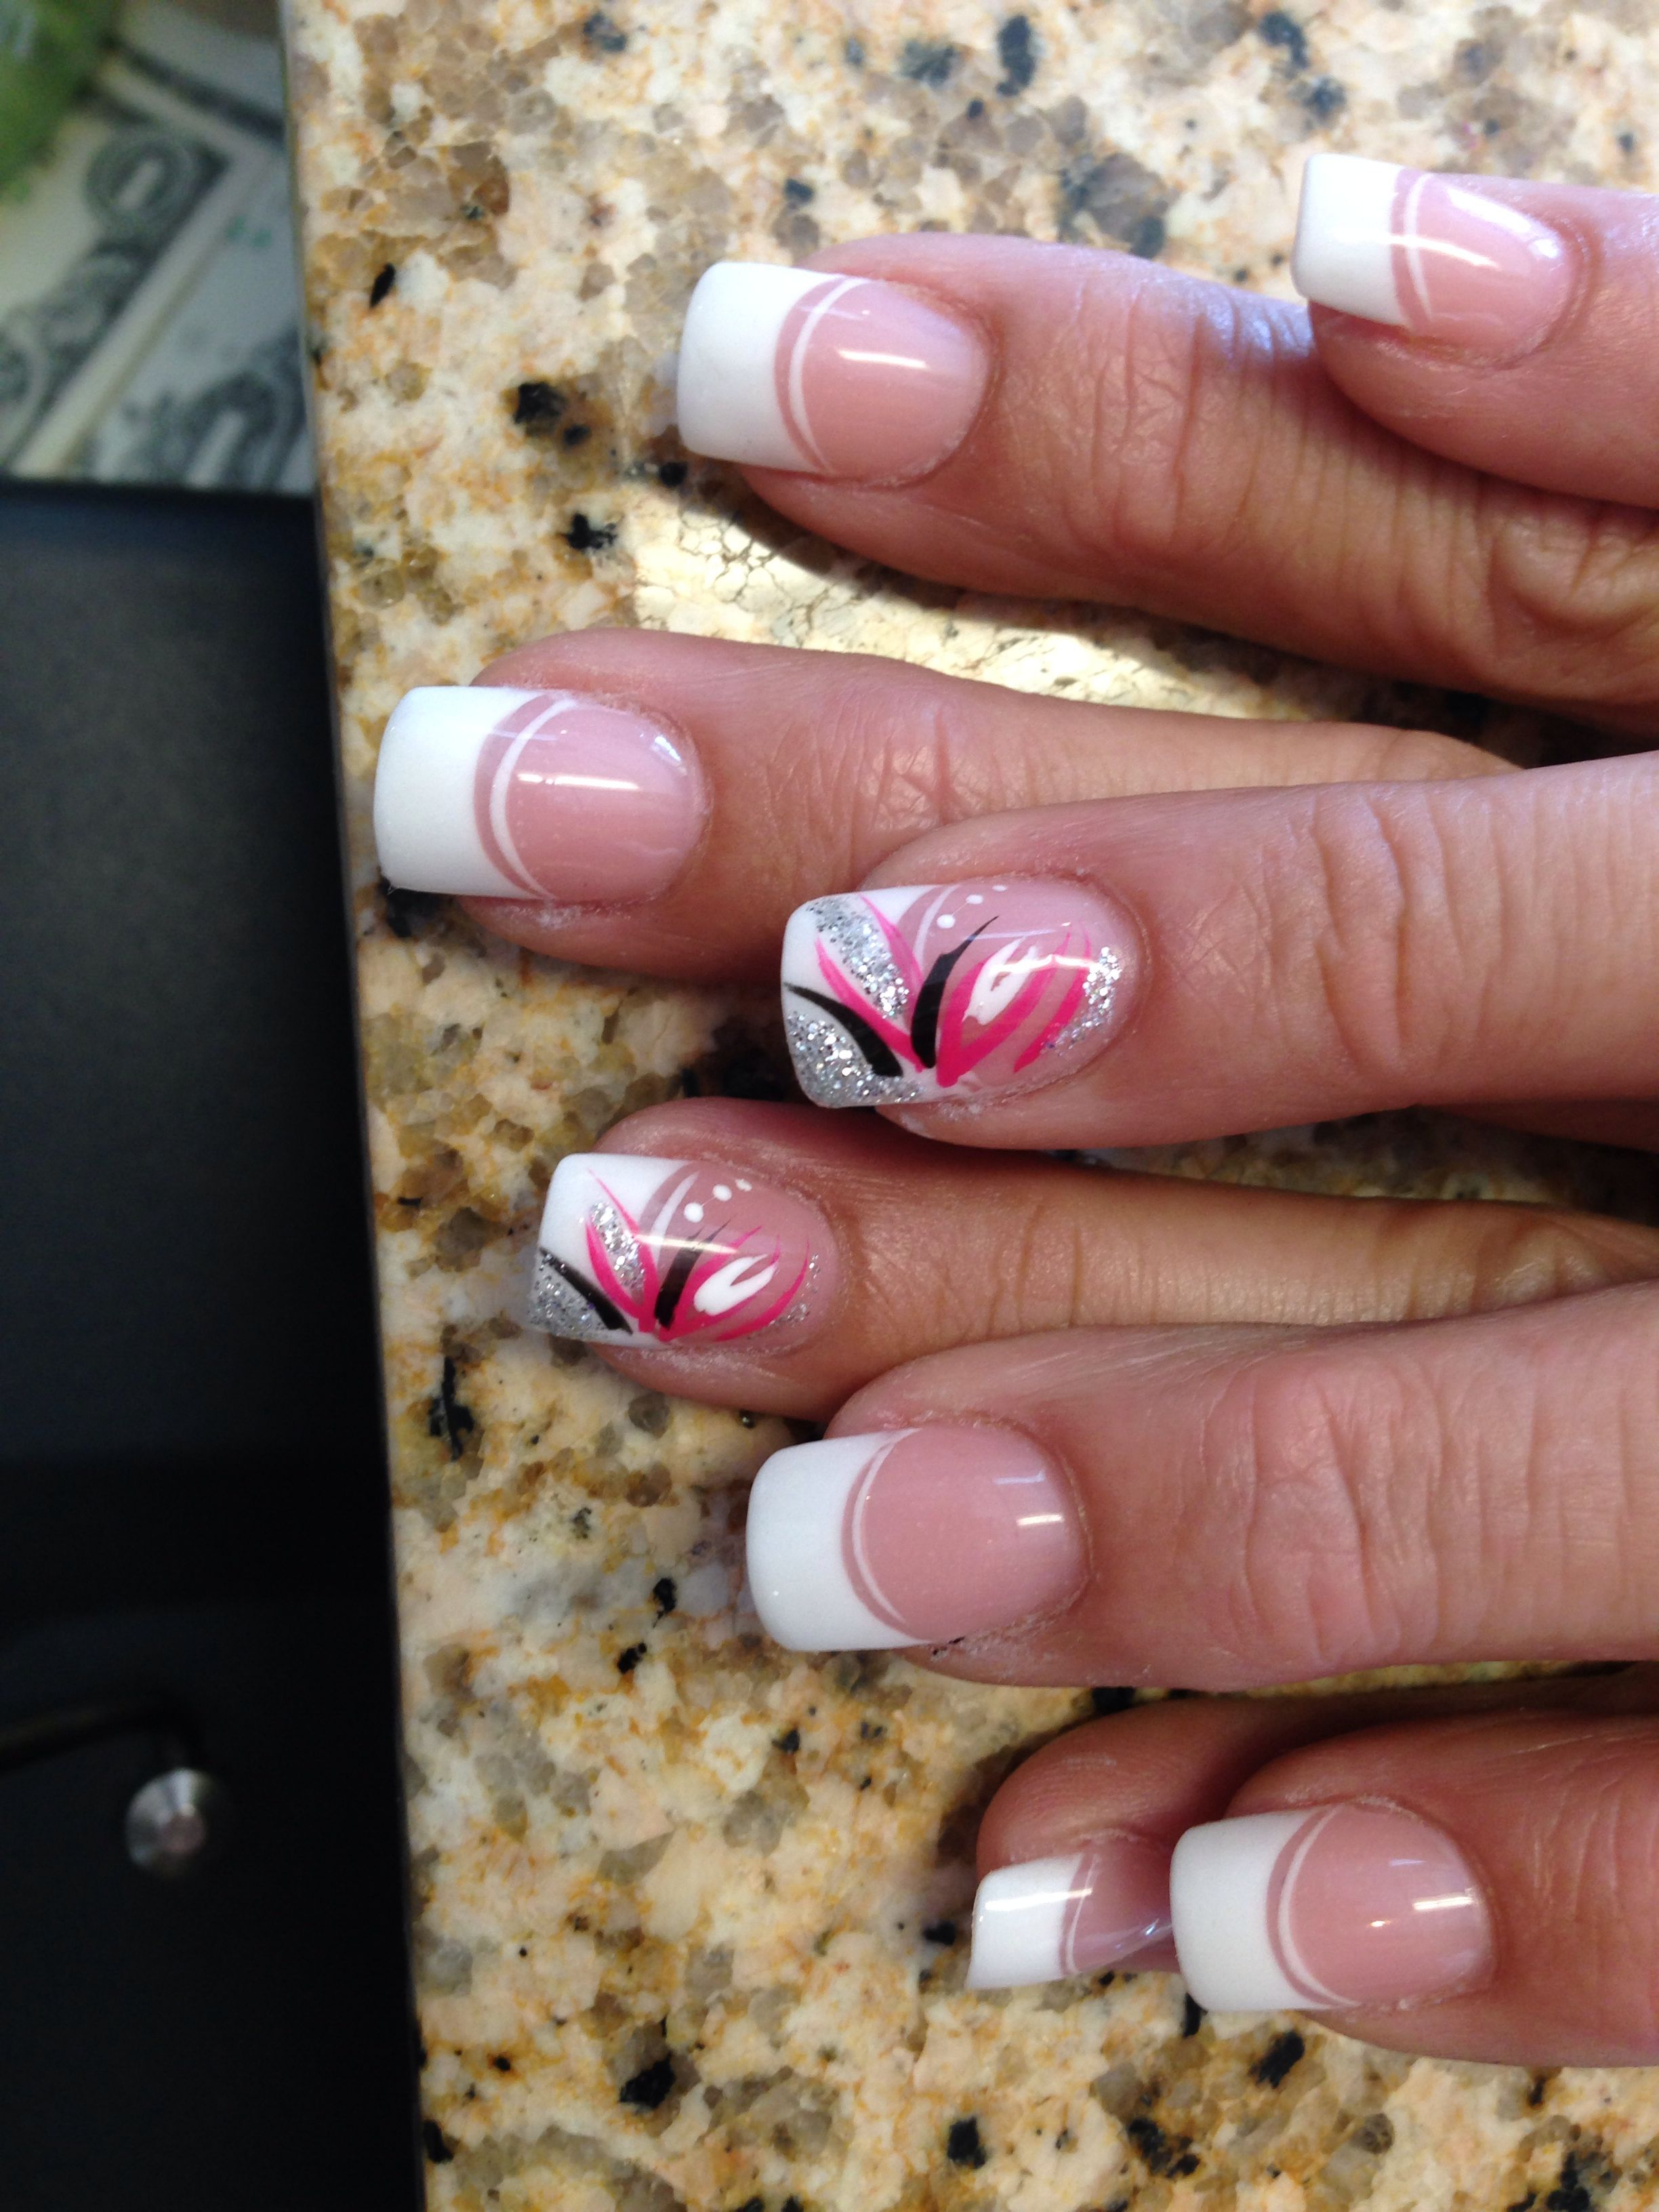 Double French free style nails art | Danny | Pinterest | Style nails